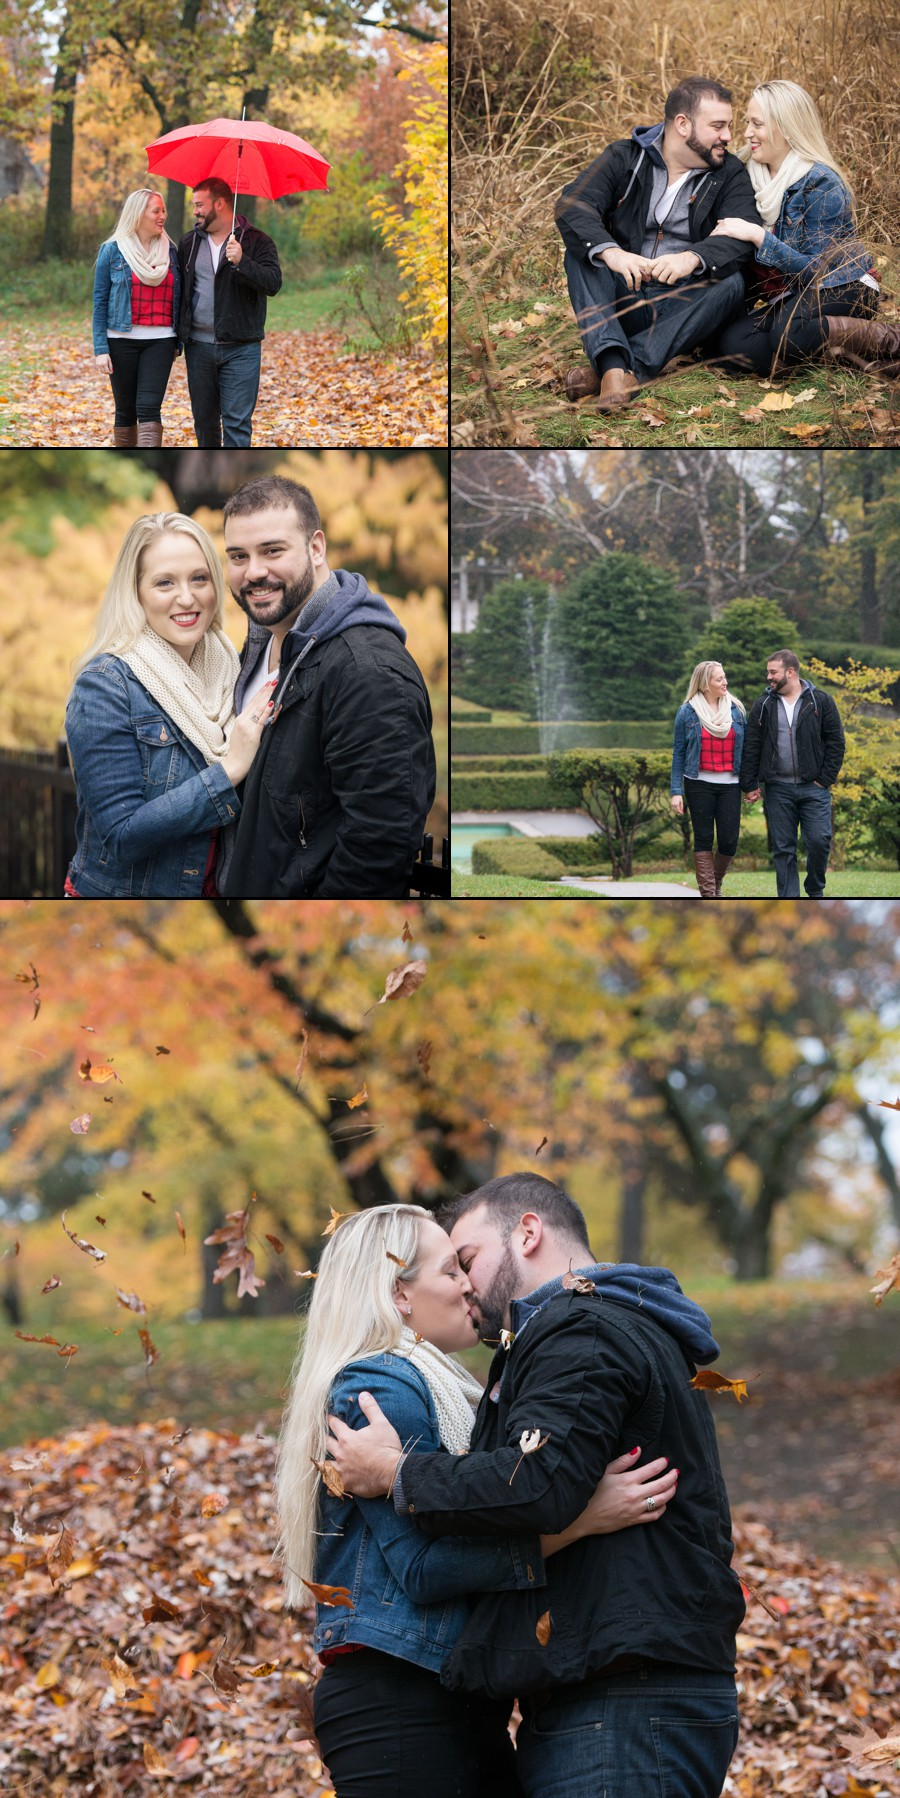 Angela and Mark's Second Engagement